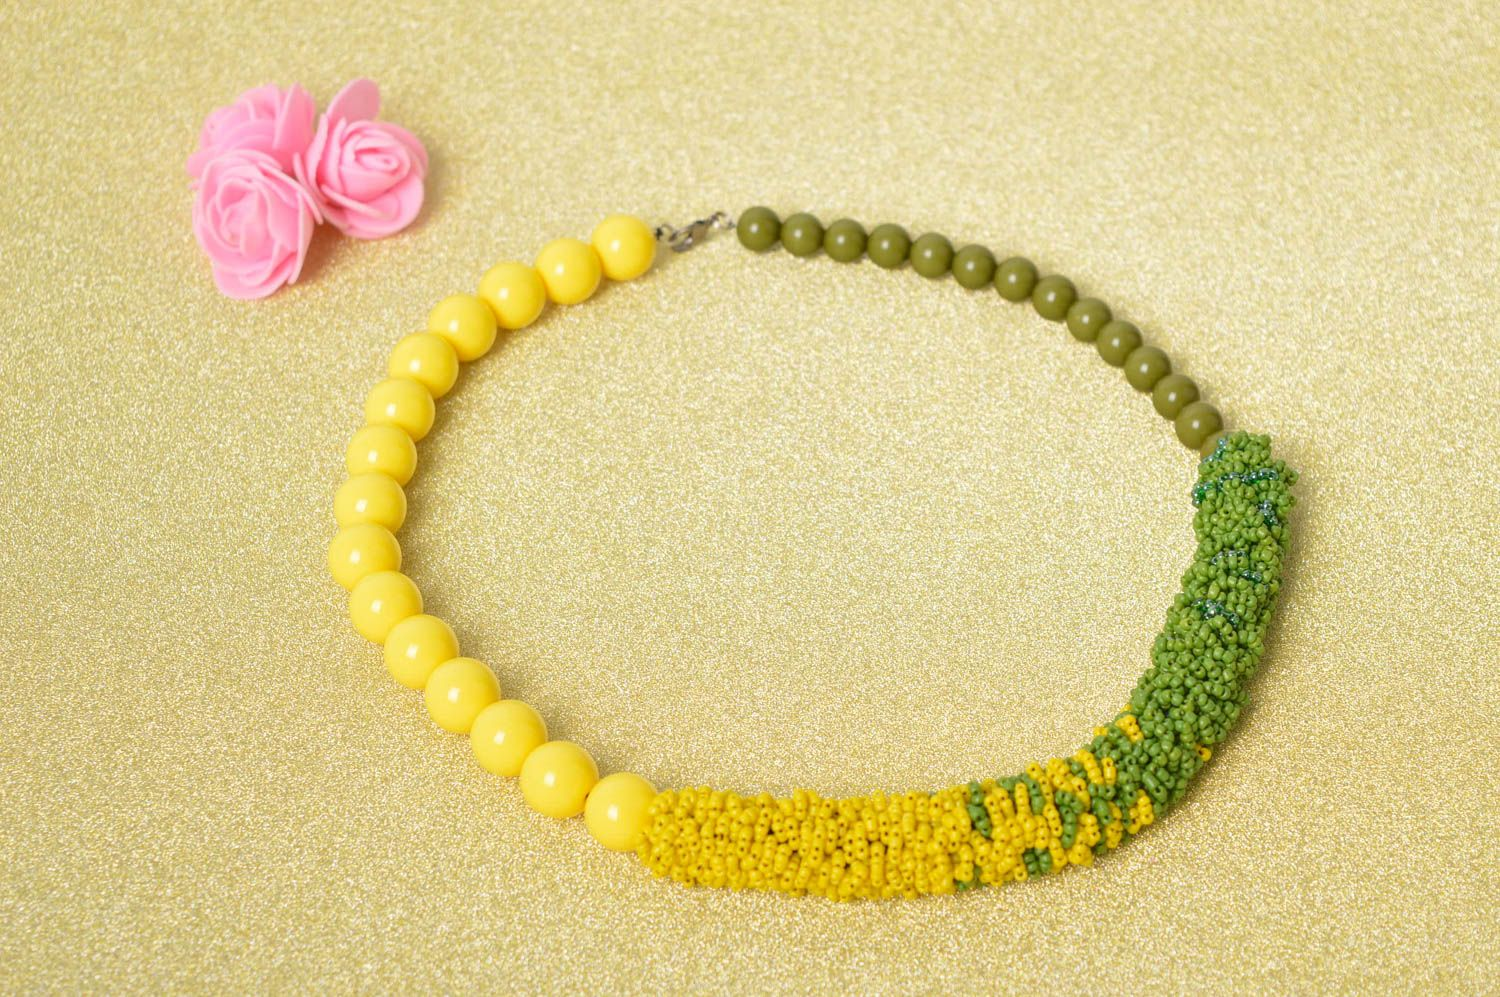 Handmade beaded necklace cool jewelry artisan jewelry designs gifts for her photo 1